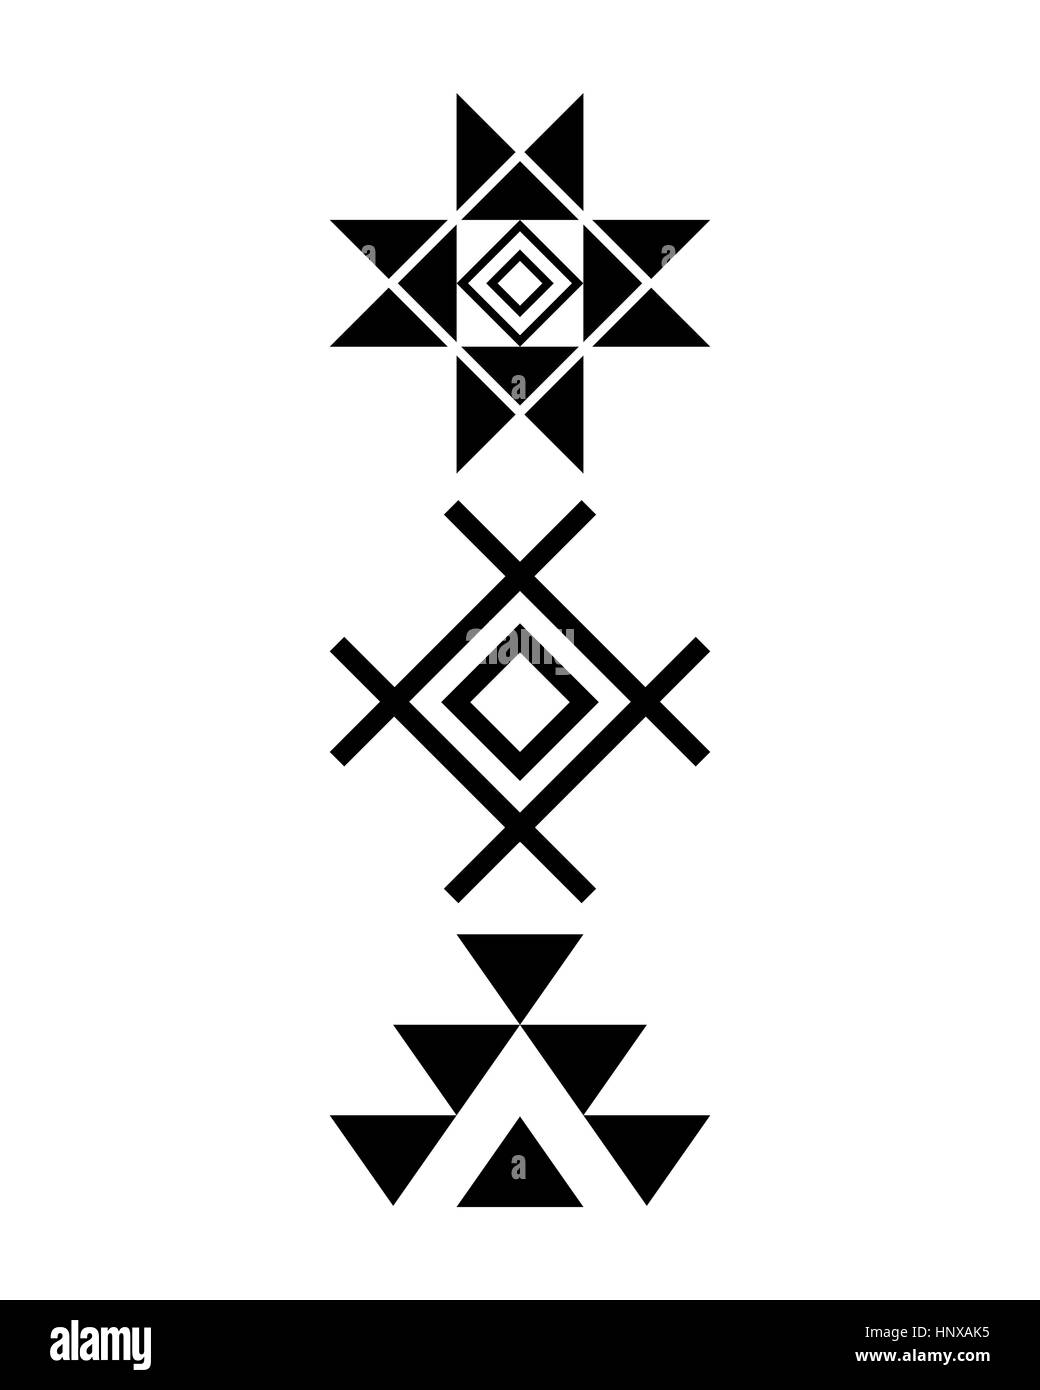 picture relating to Native American Designs Printable called Navajo print, Aztec routine, Tribal layout, Indigenous American